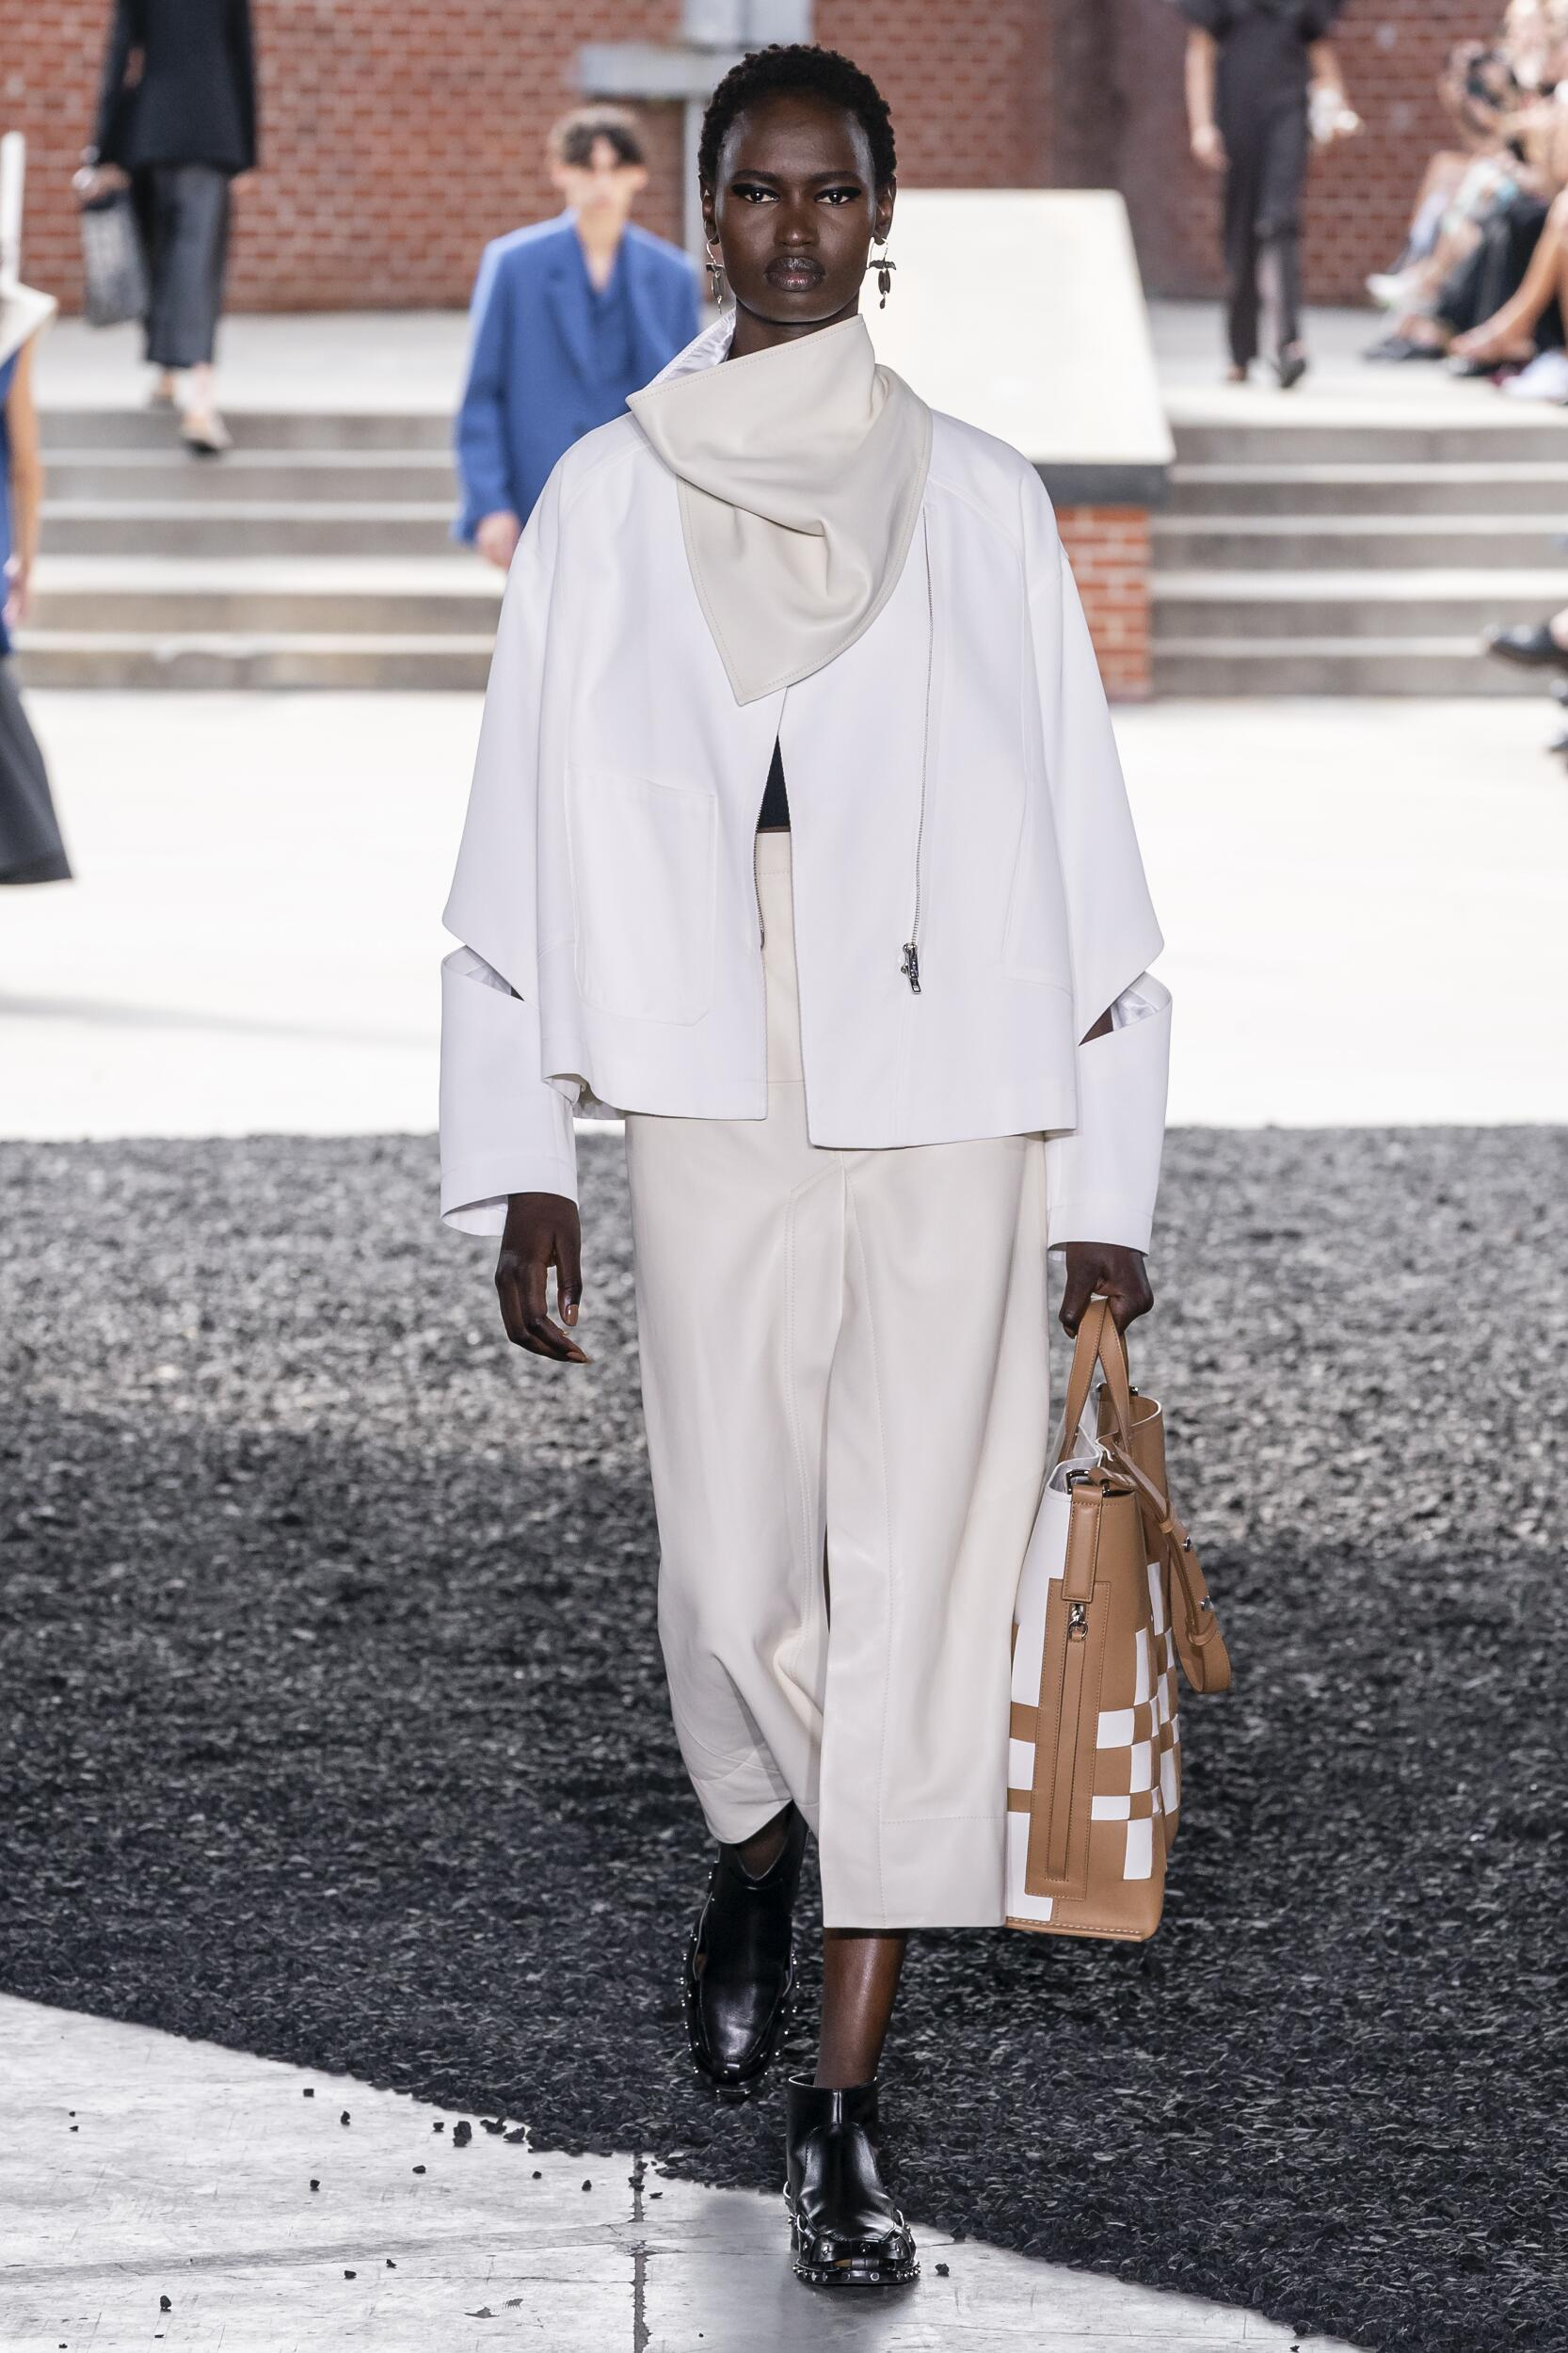 Catwalk 3.1 Phillip Lim Woman Fashion Show Summer 2020